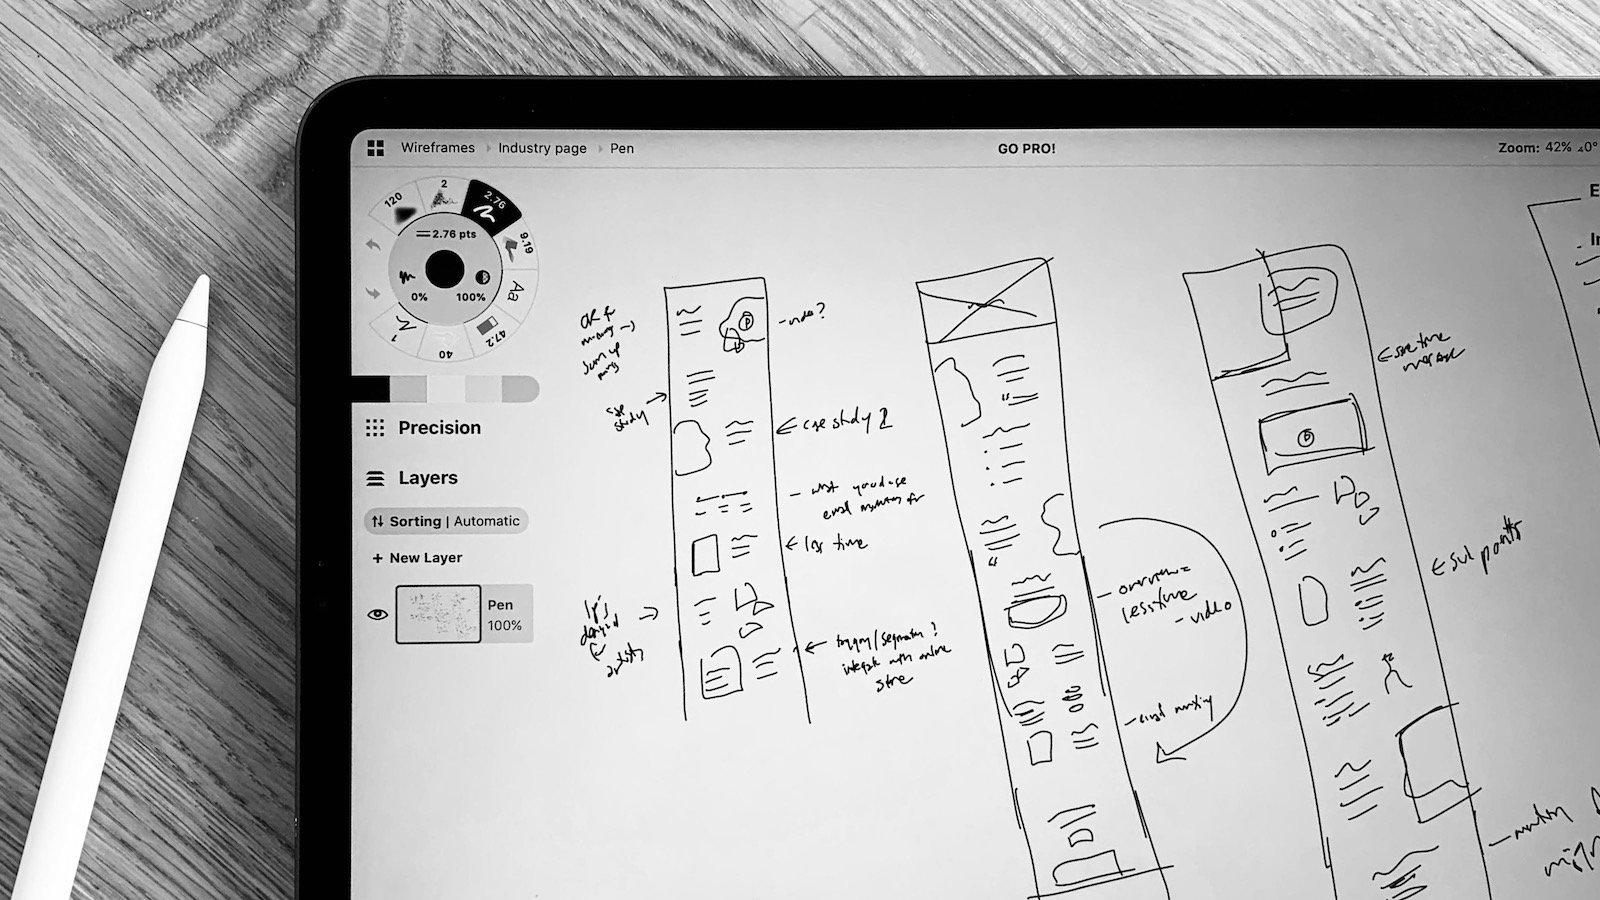 Prototype and wireframes